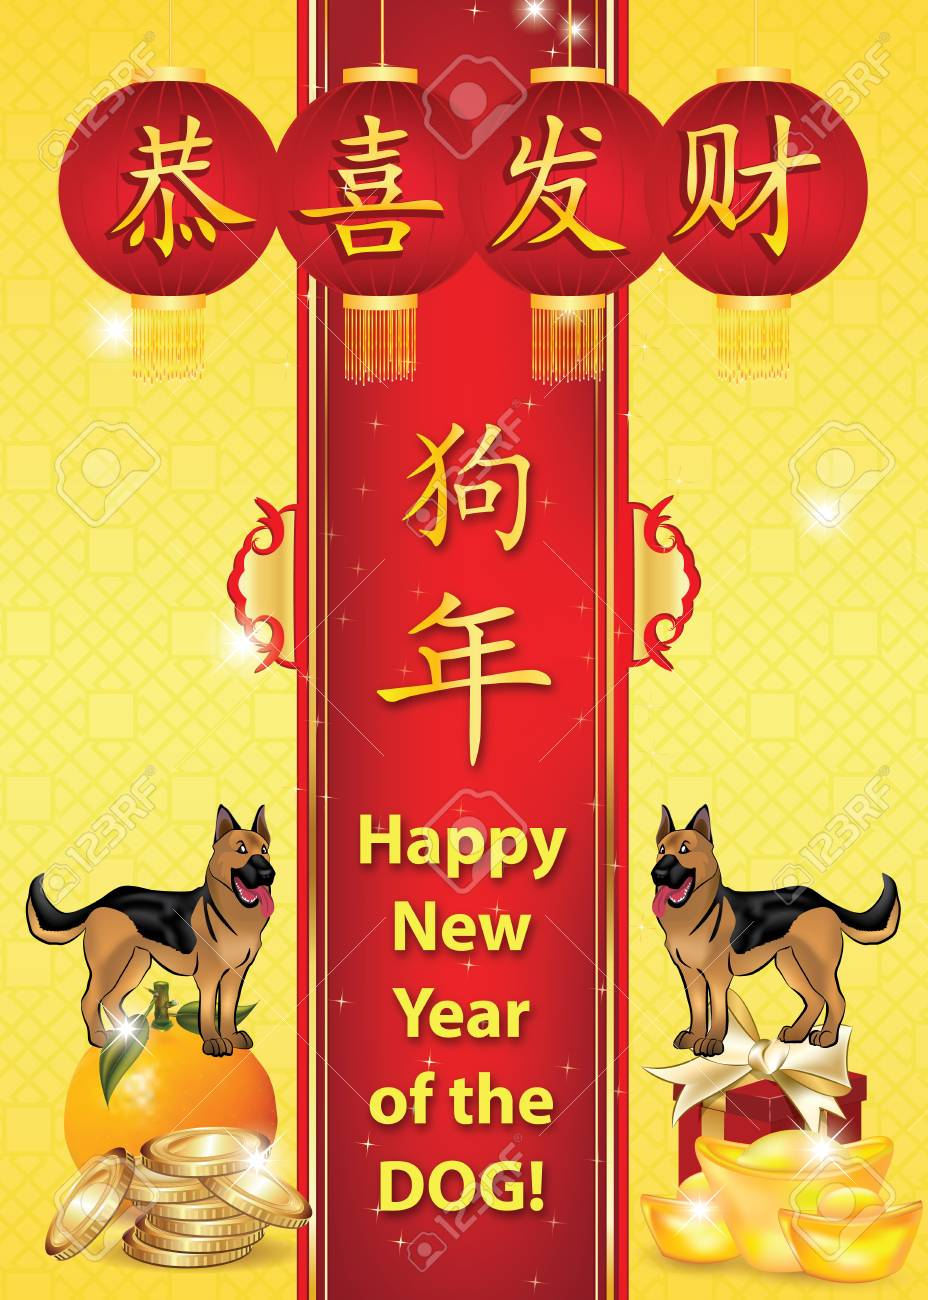 Happy Chinese Year Of The Dog Greeting Card Text Translation